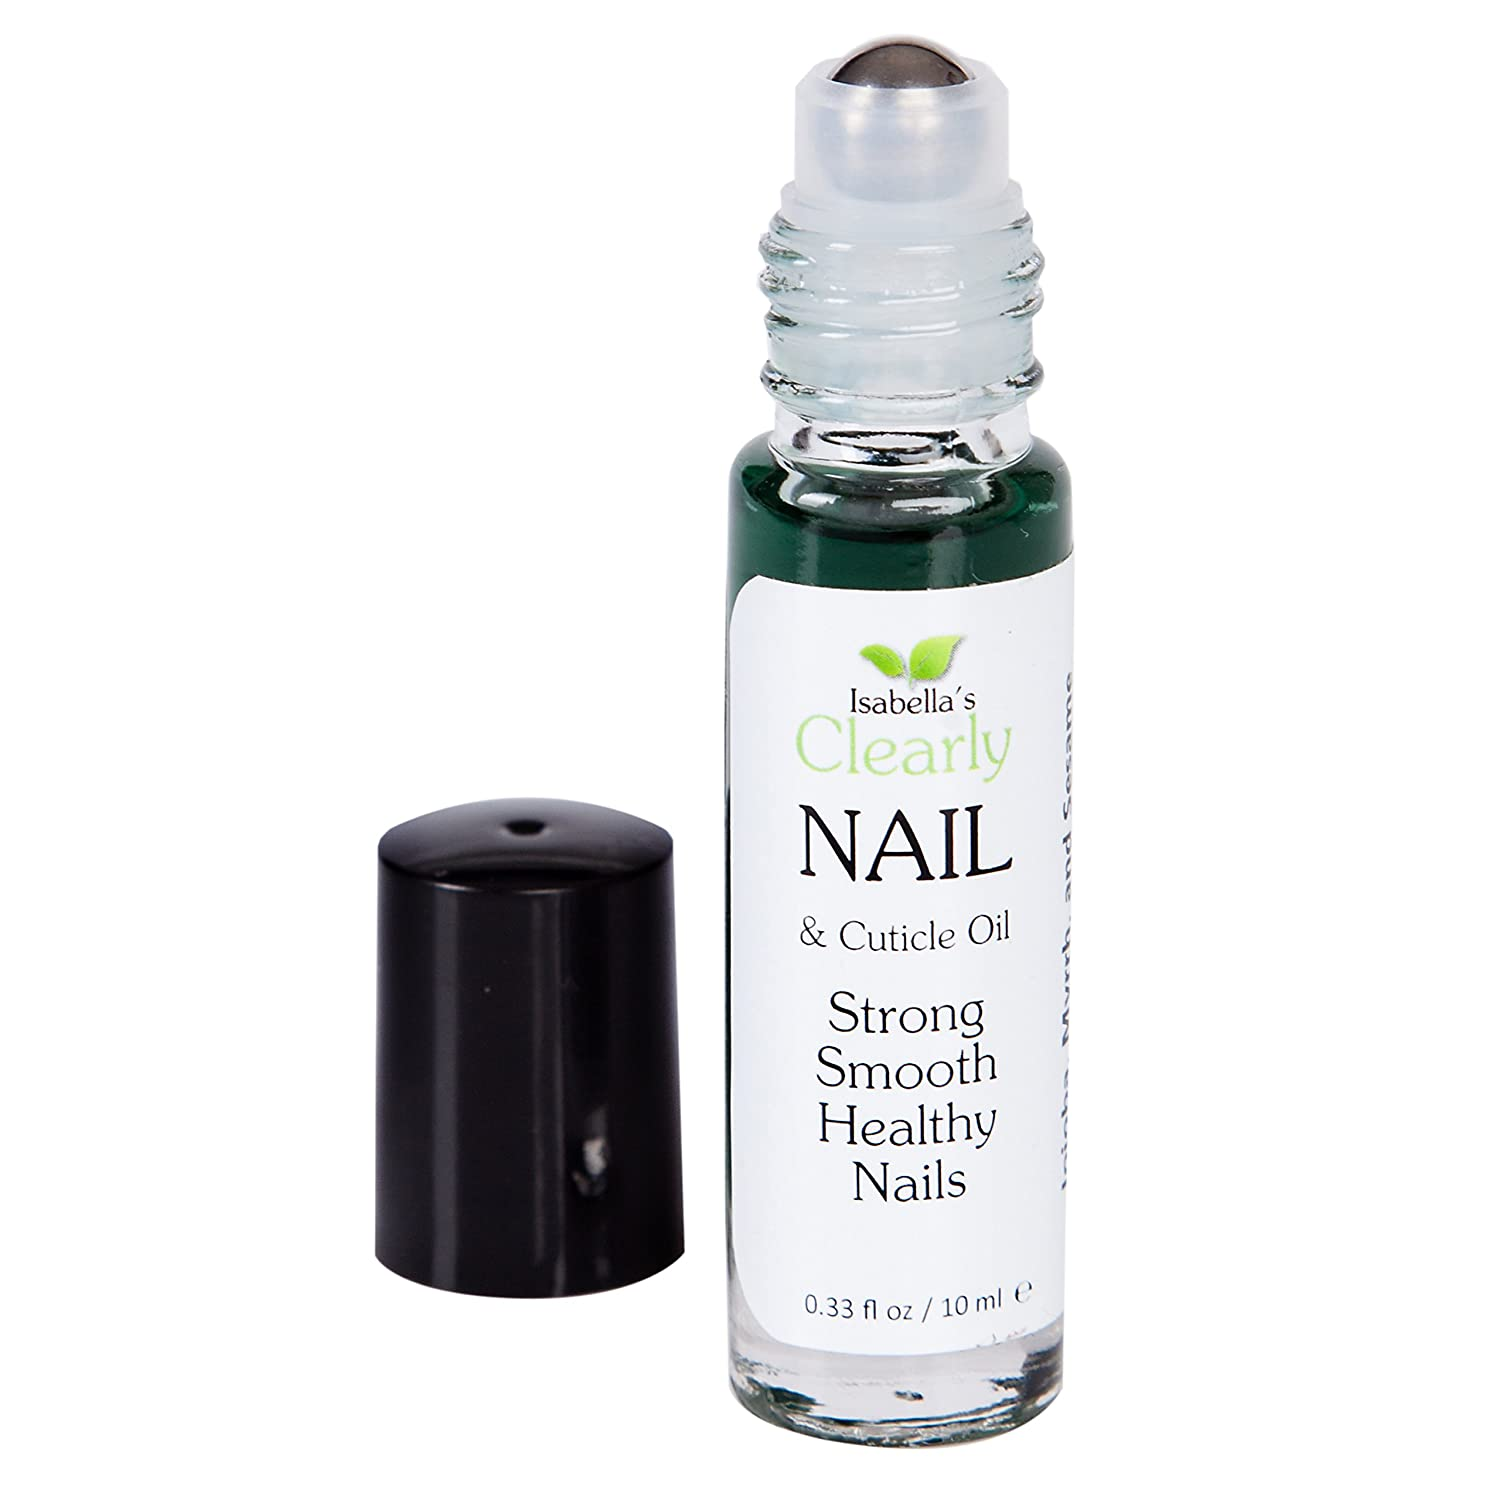 Isabella's Clearly NAIL - Best Natural Nail & Cuticle Oil. Moisturize Dry Cuticles, Treat Brittle Cracked Nails. Strong, Smooth & Healthy. Vitamin E, Almond, Jojoba, Tansy, Myrrh, Anti-Fungal Tea Tree, 0.3 Oz Isabella's Clearly 10002